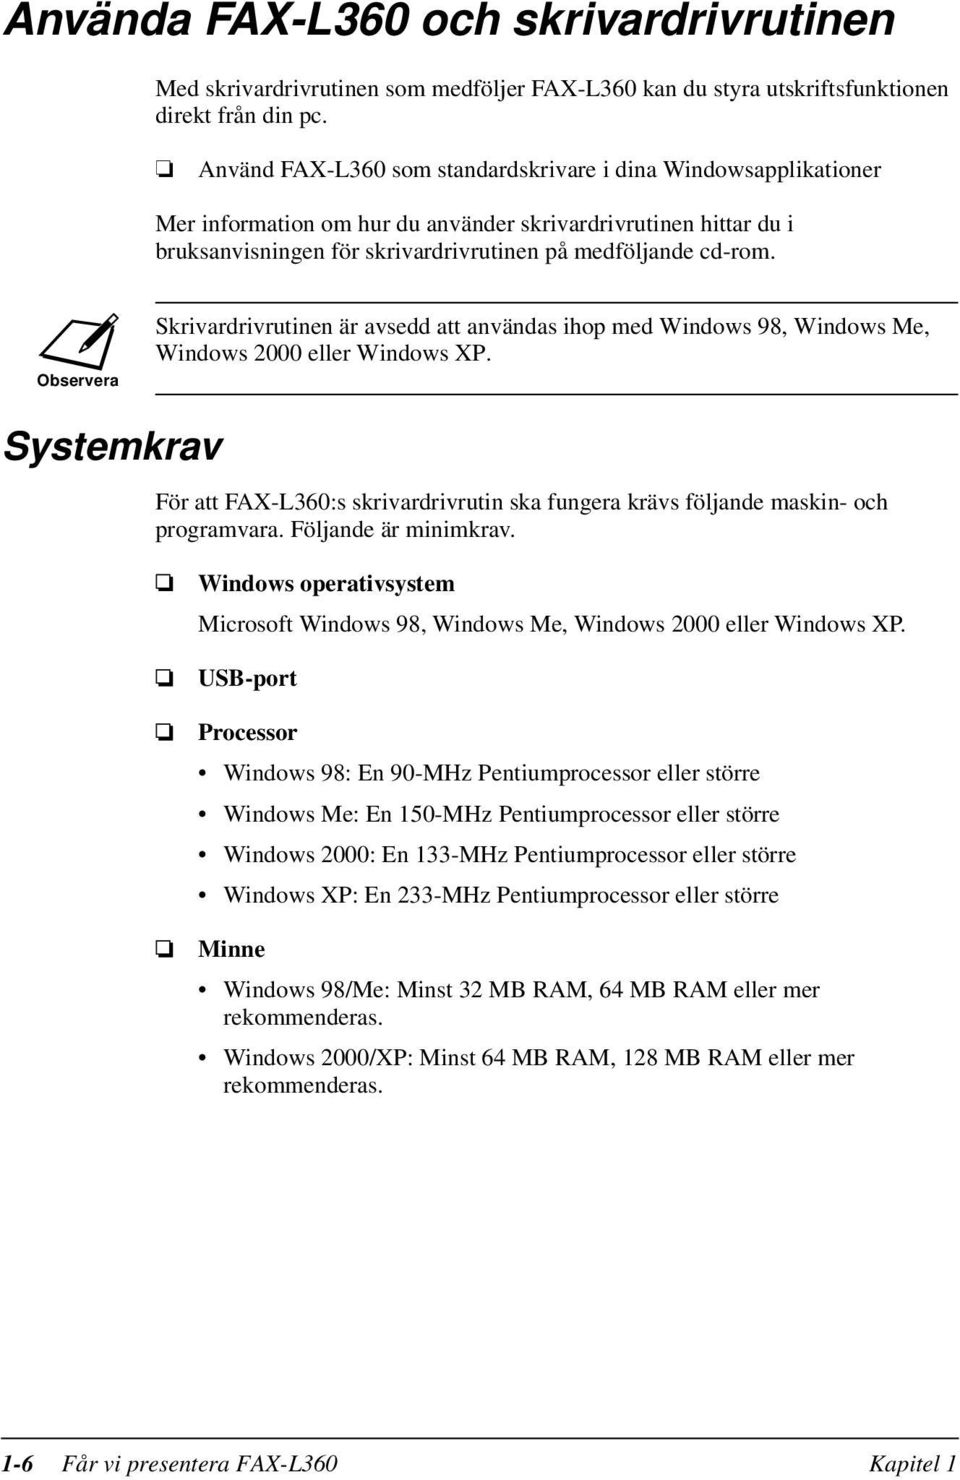 Observera Skrivardrivrutinen är avsedd att användas ihop med Windows 98, Windows Me, Windows 2000 eller Windows XP.